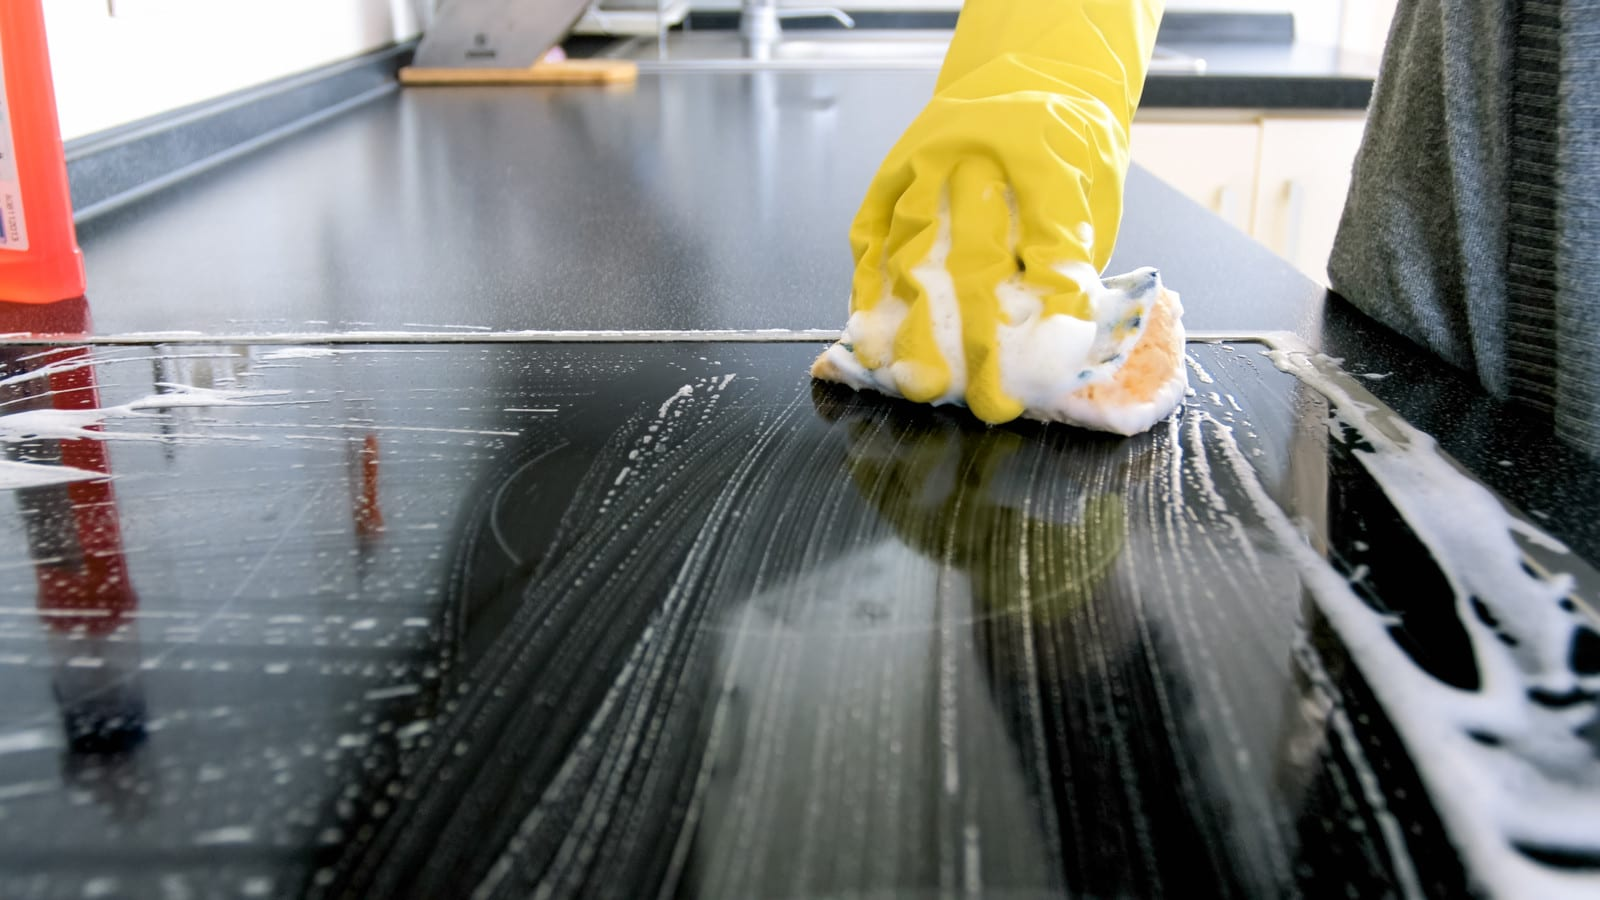 GIVE YOUR KITCHEN A PROFESSIONAL SPARKLE & SHINE WITH OUR RESIDENTIAL KITCHEN CLEANING SERVICES Does it seem that no matter how often you attempt to clean your kitchen it always gets dirty again? That's because the kitchen is usually the most high-trafficked area in your home. Dishes can quickly pile up, crumbs from prep work and cooked food fall on the counters and the floor. Countertops get smudged and the stove gets splattered. A kitchen that was clean in the morning can look a mess by the evening. But there's no reason you can't enjoy a clean kitchen without having to constantly do all the cleaning work yourself. Simply do what so many other homeowners in your area have done — hire professionals to give your beautiful kitchen the clean and shine it deserves! THOROUGH KITCHEN CLEANING SERVICES BY PROFESSIONALS A weekly kitchen cleaning delivers amazing results that show! Enabling you to truly benefit from a clean space to work in and enjoy. Our kitchen cleaning services take care of your kitchen from top to bottom — we'll mop the floors, scrub and sanitize the countertops, shine your appliances, wipe down your cabinets, remove splatters from microwaves, ovens, and cooktops, and when we're done, we'll empty the trash and leave your kitchen sparkling! Our professional team of residential home cleaners take great care to ensure any and all breakable items are handled gently, so you can rest assured that your kitchen and its contents will always be in good, capable hands. We also offer different levels of our cleaning service so you can choose the cleaning and the schedule that suits your needs best. LEAVE THE WORK TO US You kitchen should be a place you can enjoy cooking, eating, and spending time with family and friends. It shouldn't feel like a second job to get it clean and prepared. Take the time to relax and leave the hard work to us! We'll tackle the toughest messes and leave you a kitchen you'll be glad to spend the day in. We'll also be happy to develop a cu